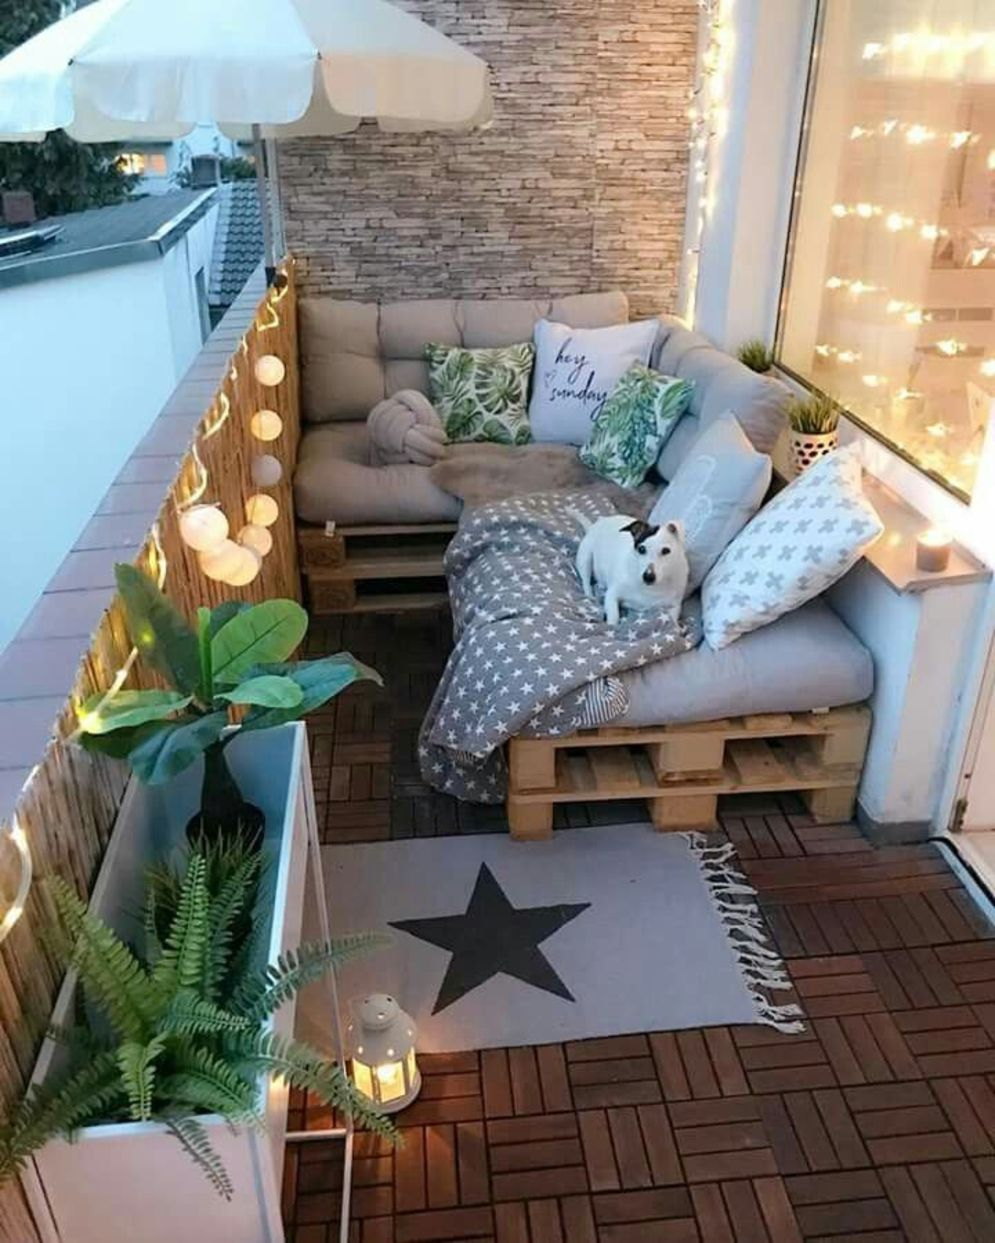 Clever apartment balcony conversion maximizing small space into functional living area Image 28